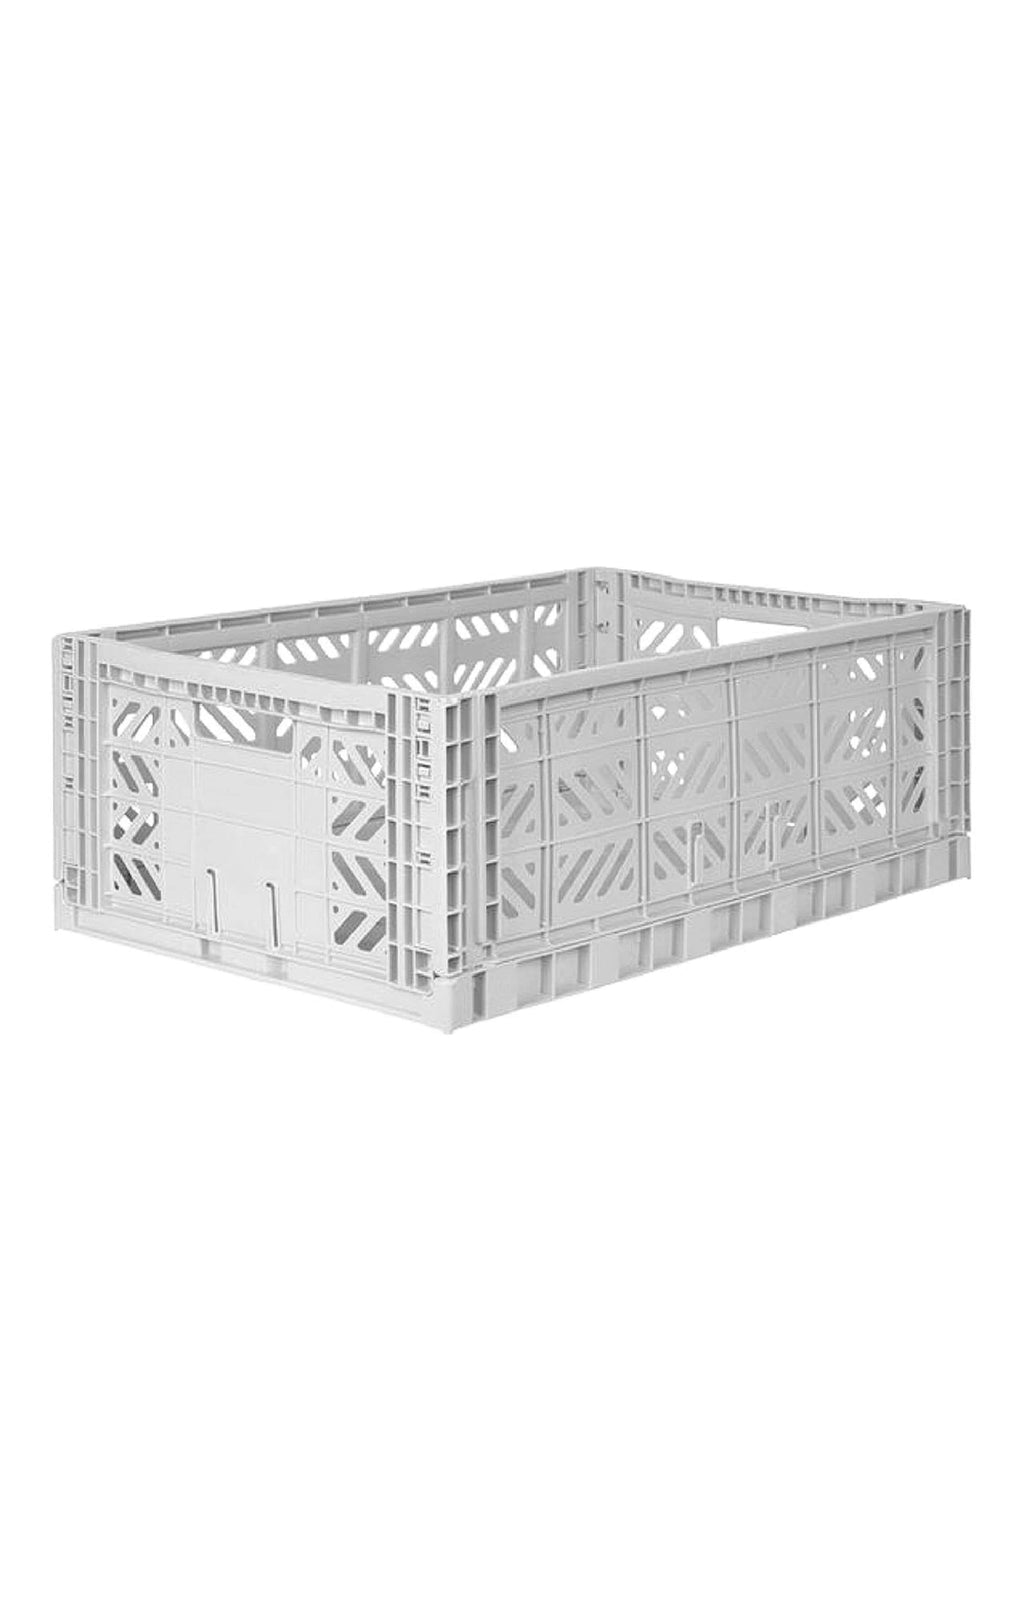 AYKASA MAXI BOX Storage Crate, Light Grey - Hello Little Birdie